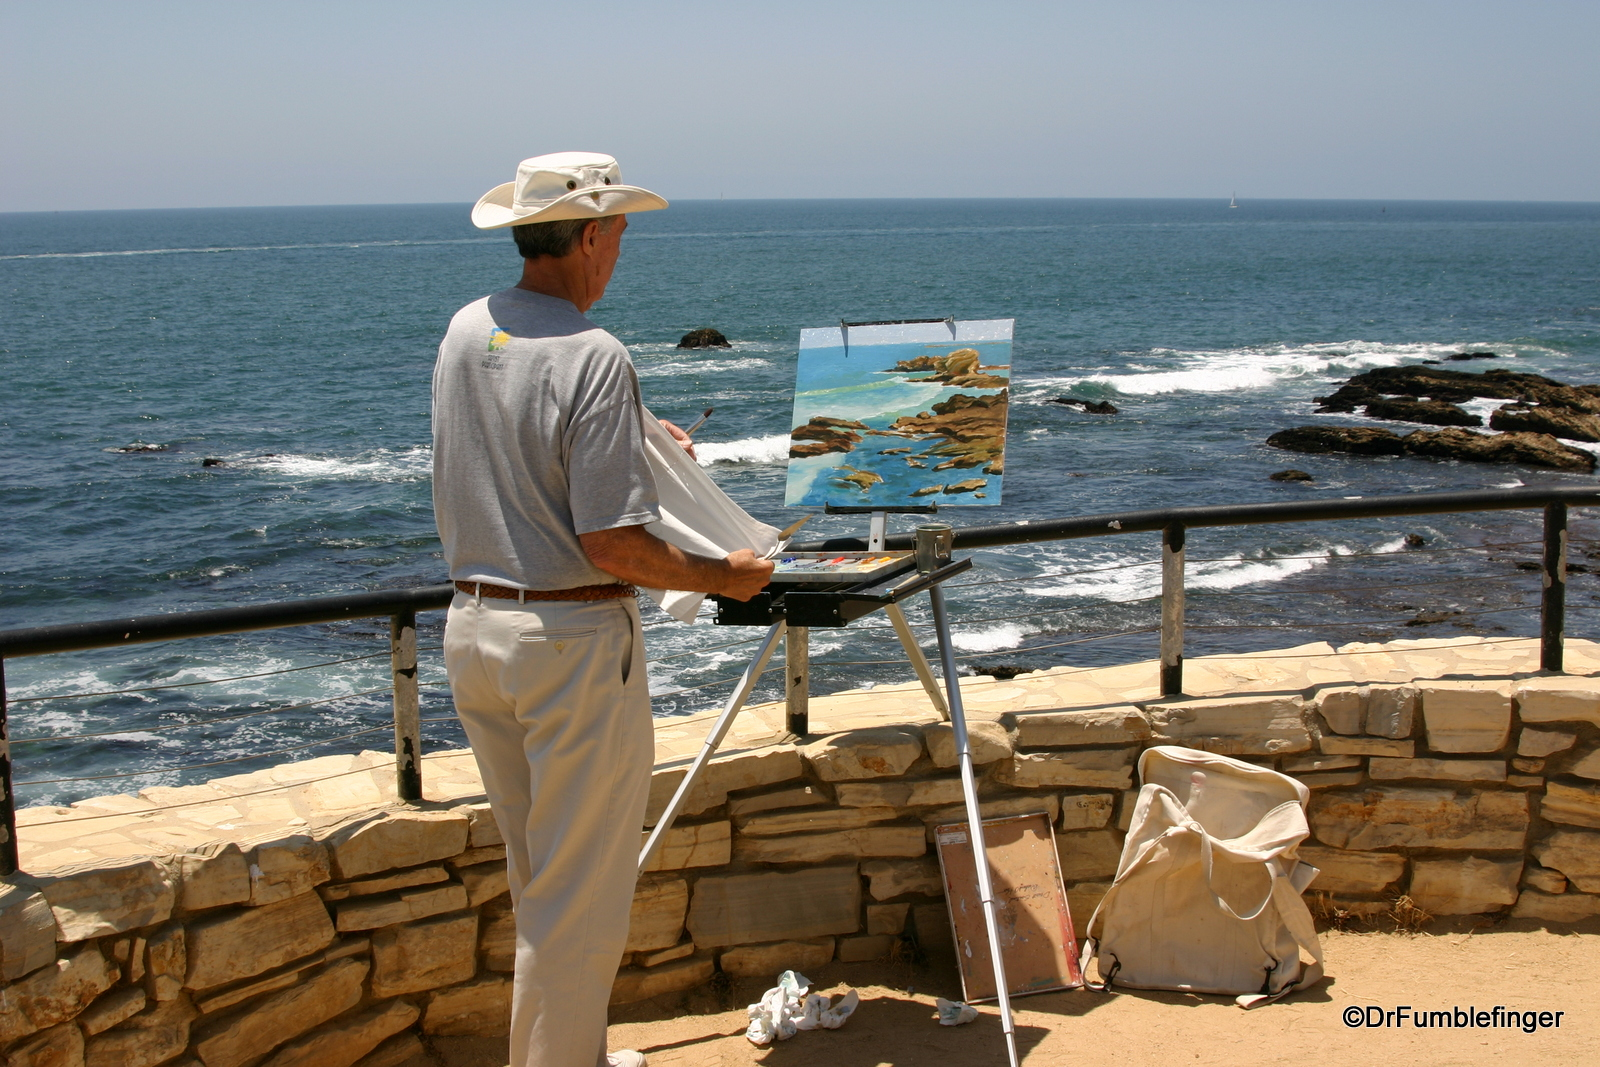 Artist at Crystal Cove, Newport Beach, California